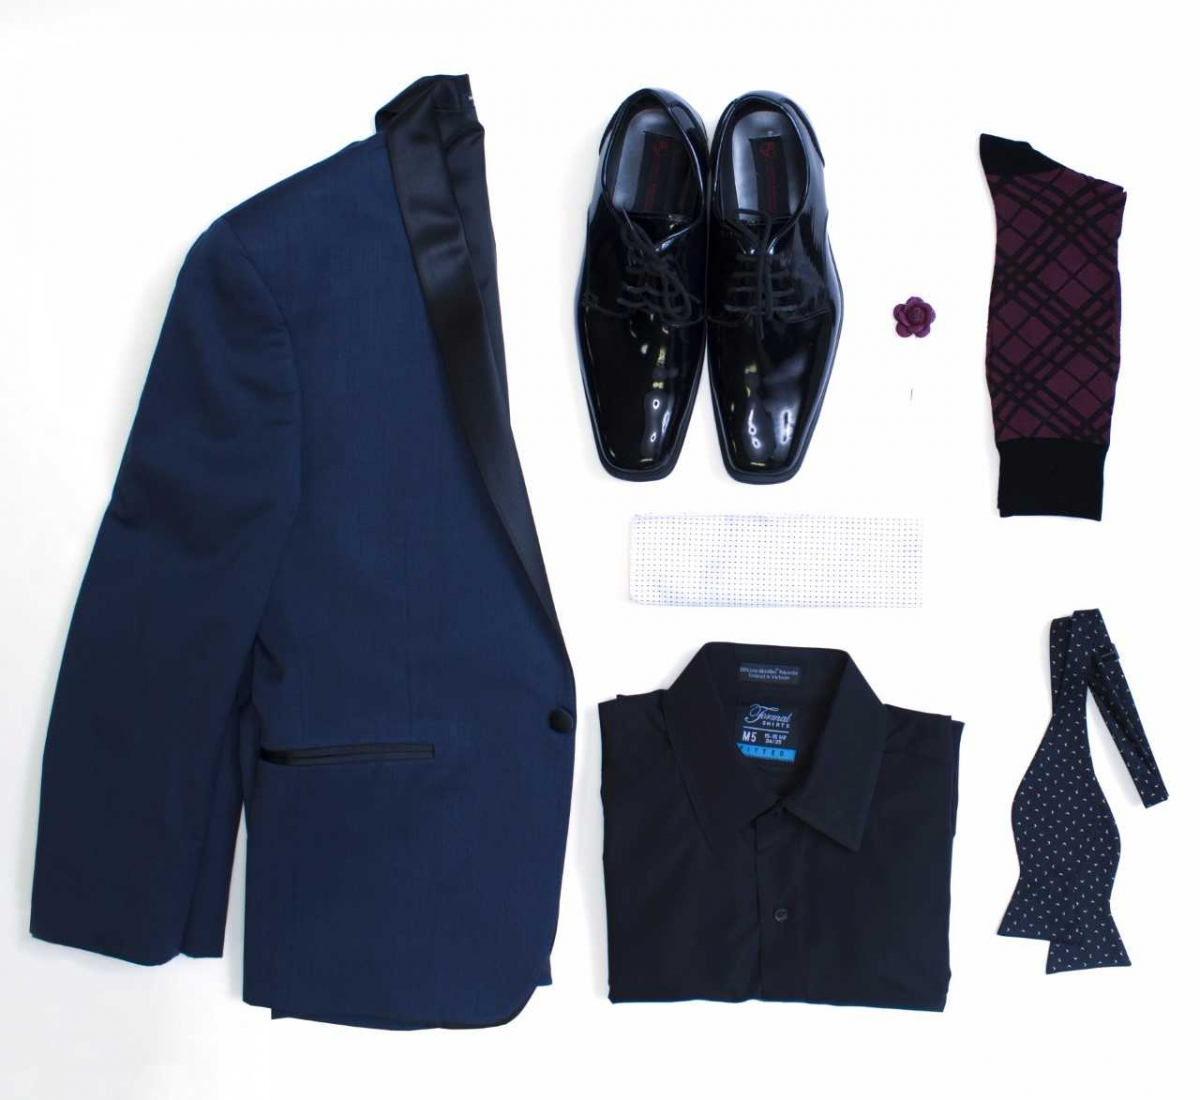 How To Wear It A Chic Departure From Your Standard Black Tuxedo Navy Tux Says Modern In All The Best Ways Pair With Shoes